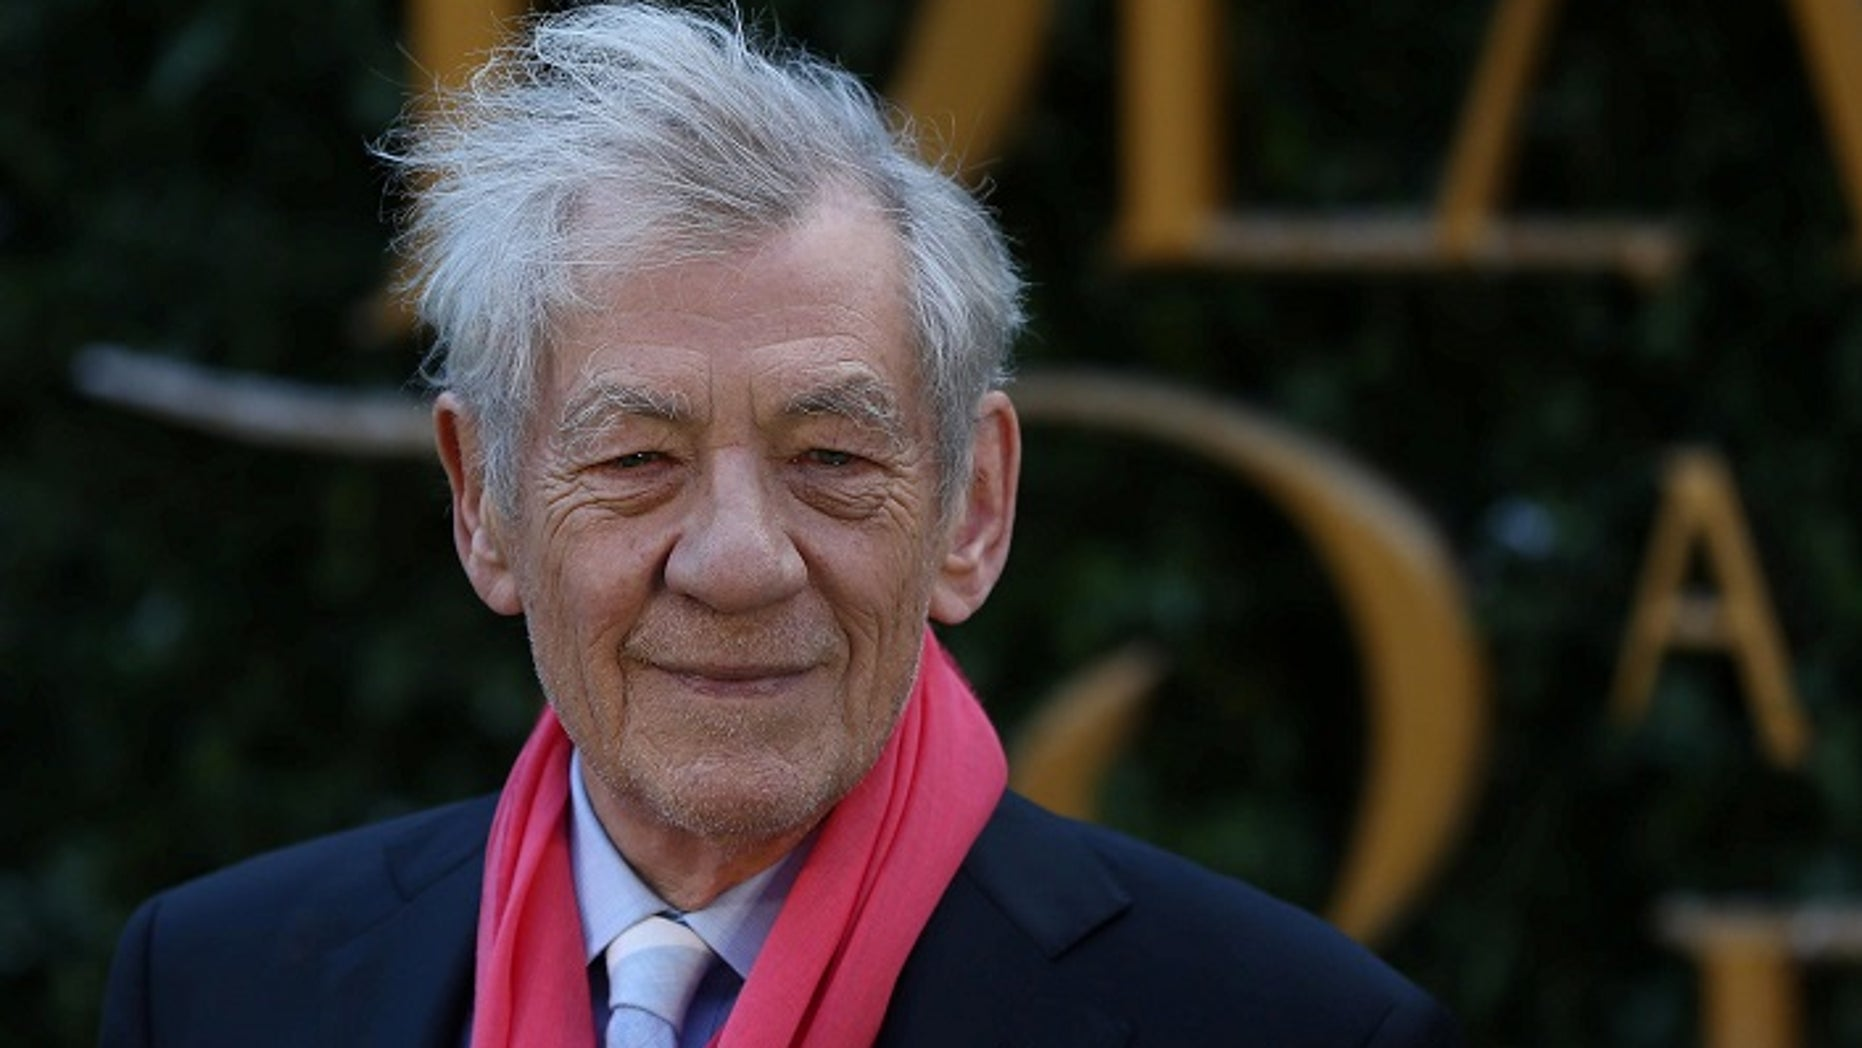 Ian McKellen said it was common back when he first began acting for actresses to proposition directors with sex for roles.